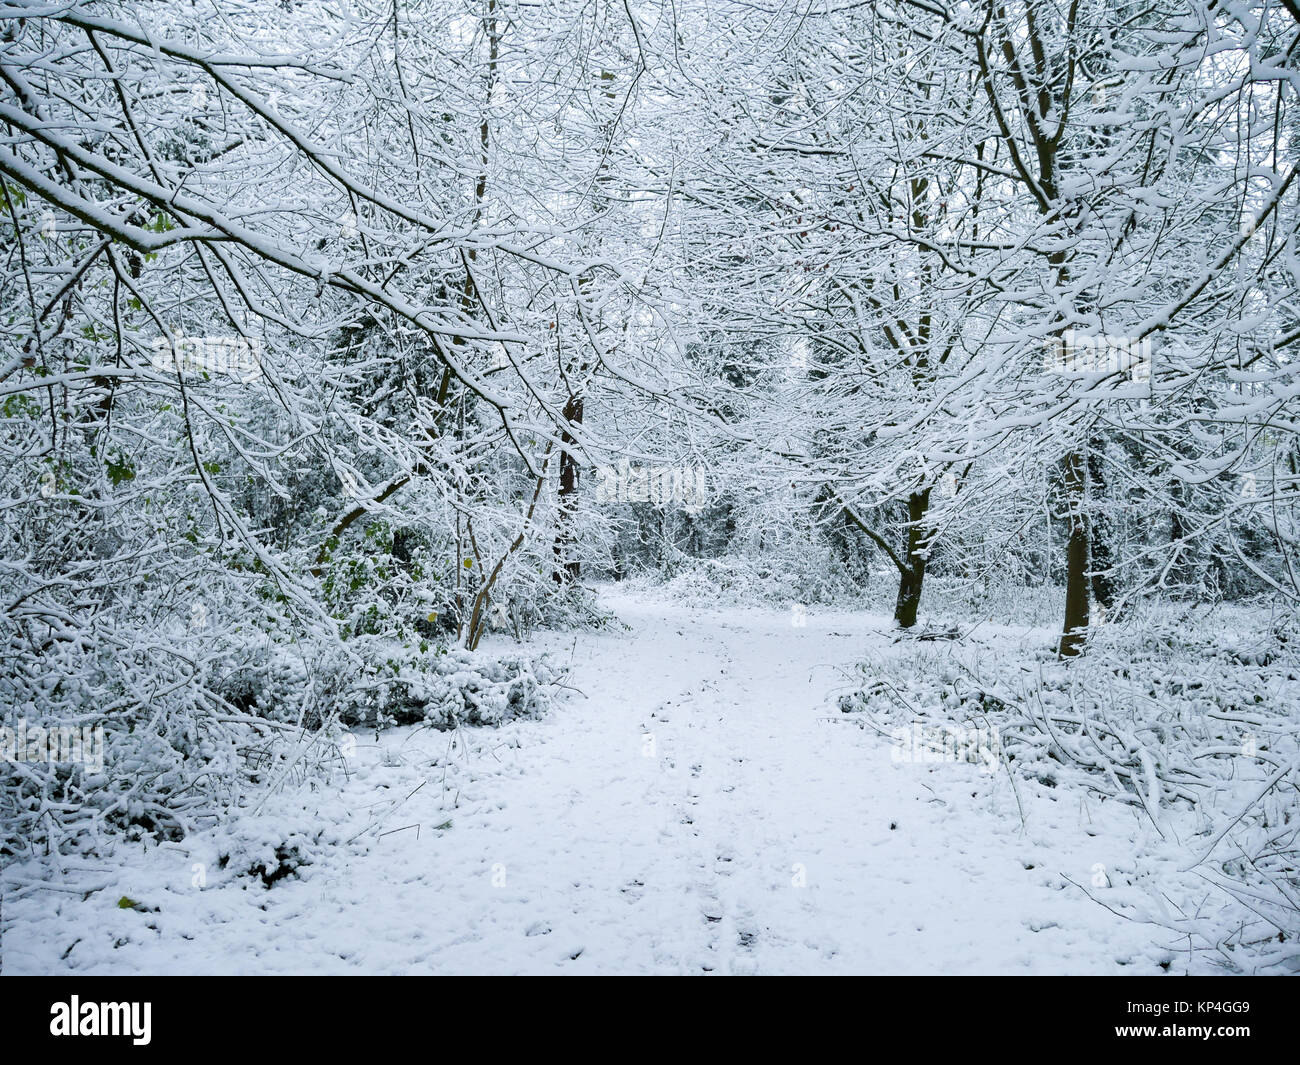 Footprints in the snow on a path through the forest. A winter wonderland scene. - Stock Image